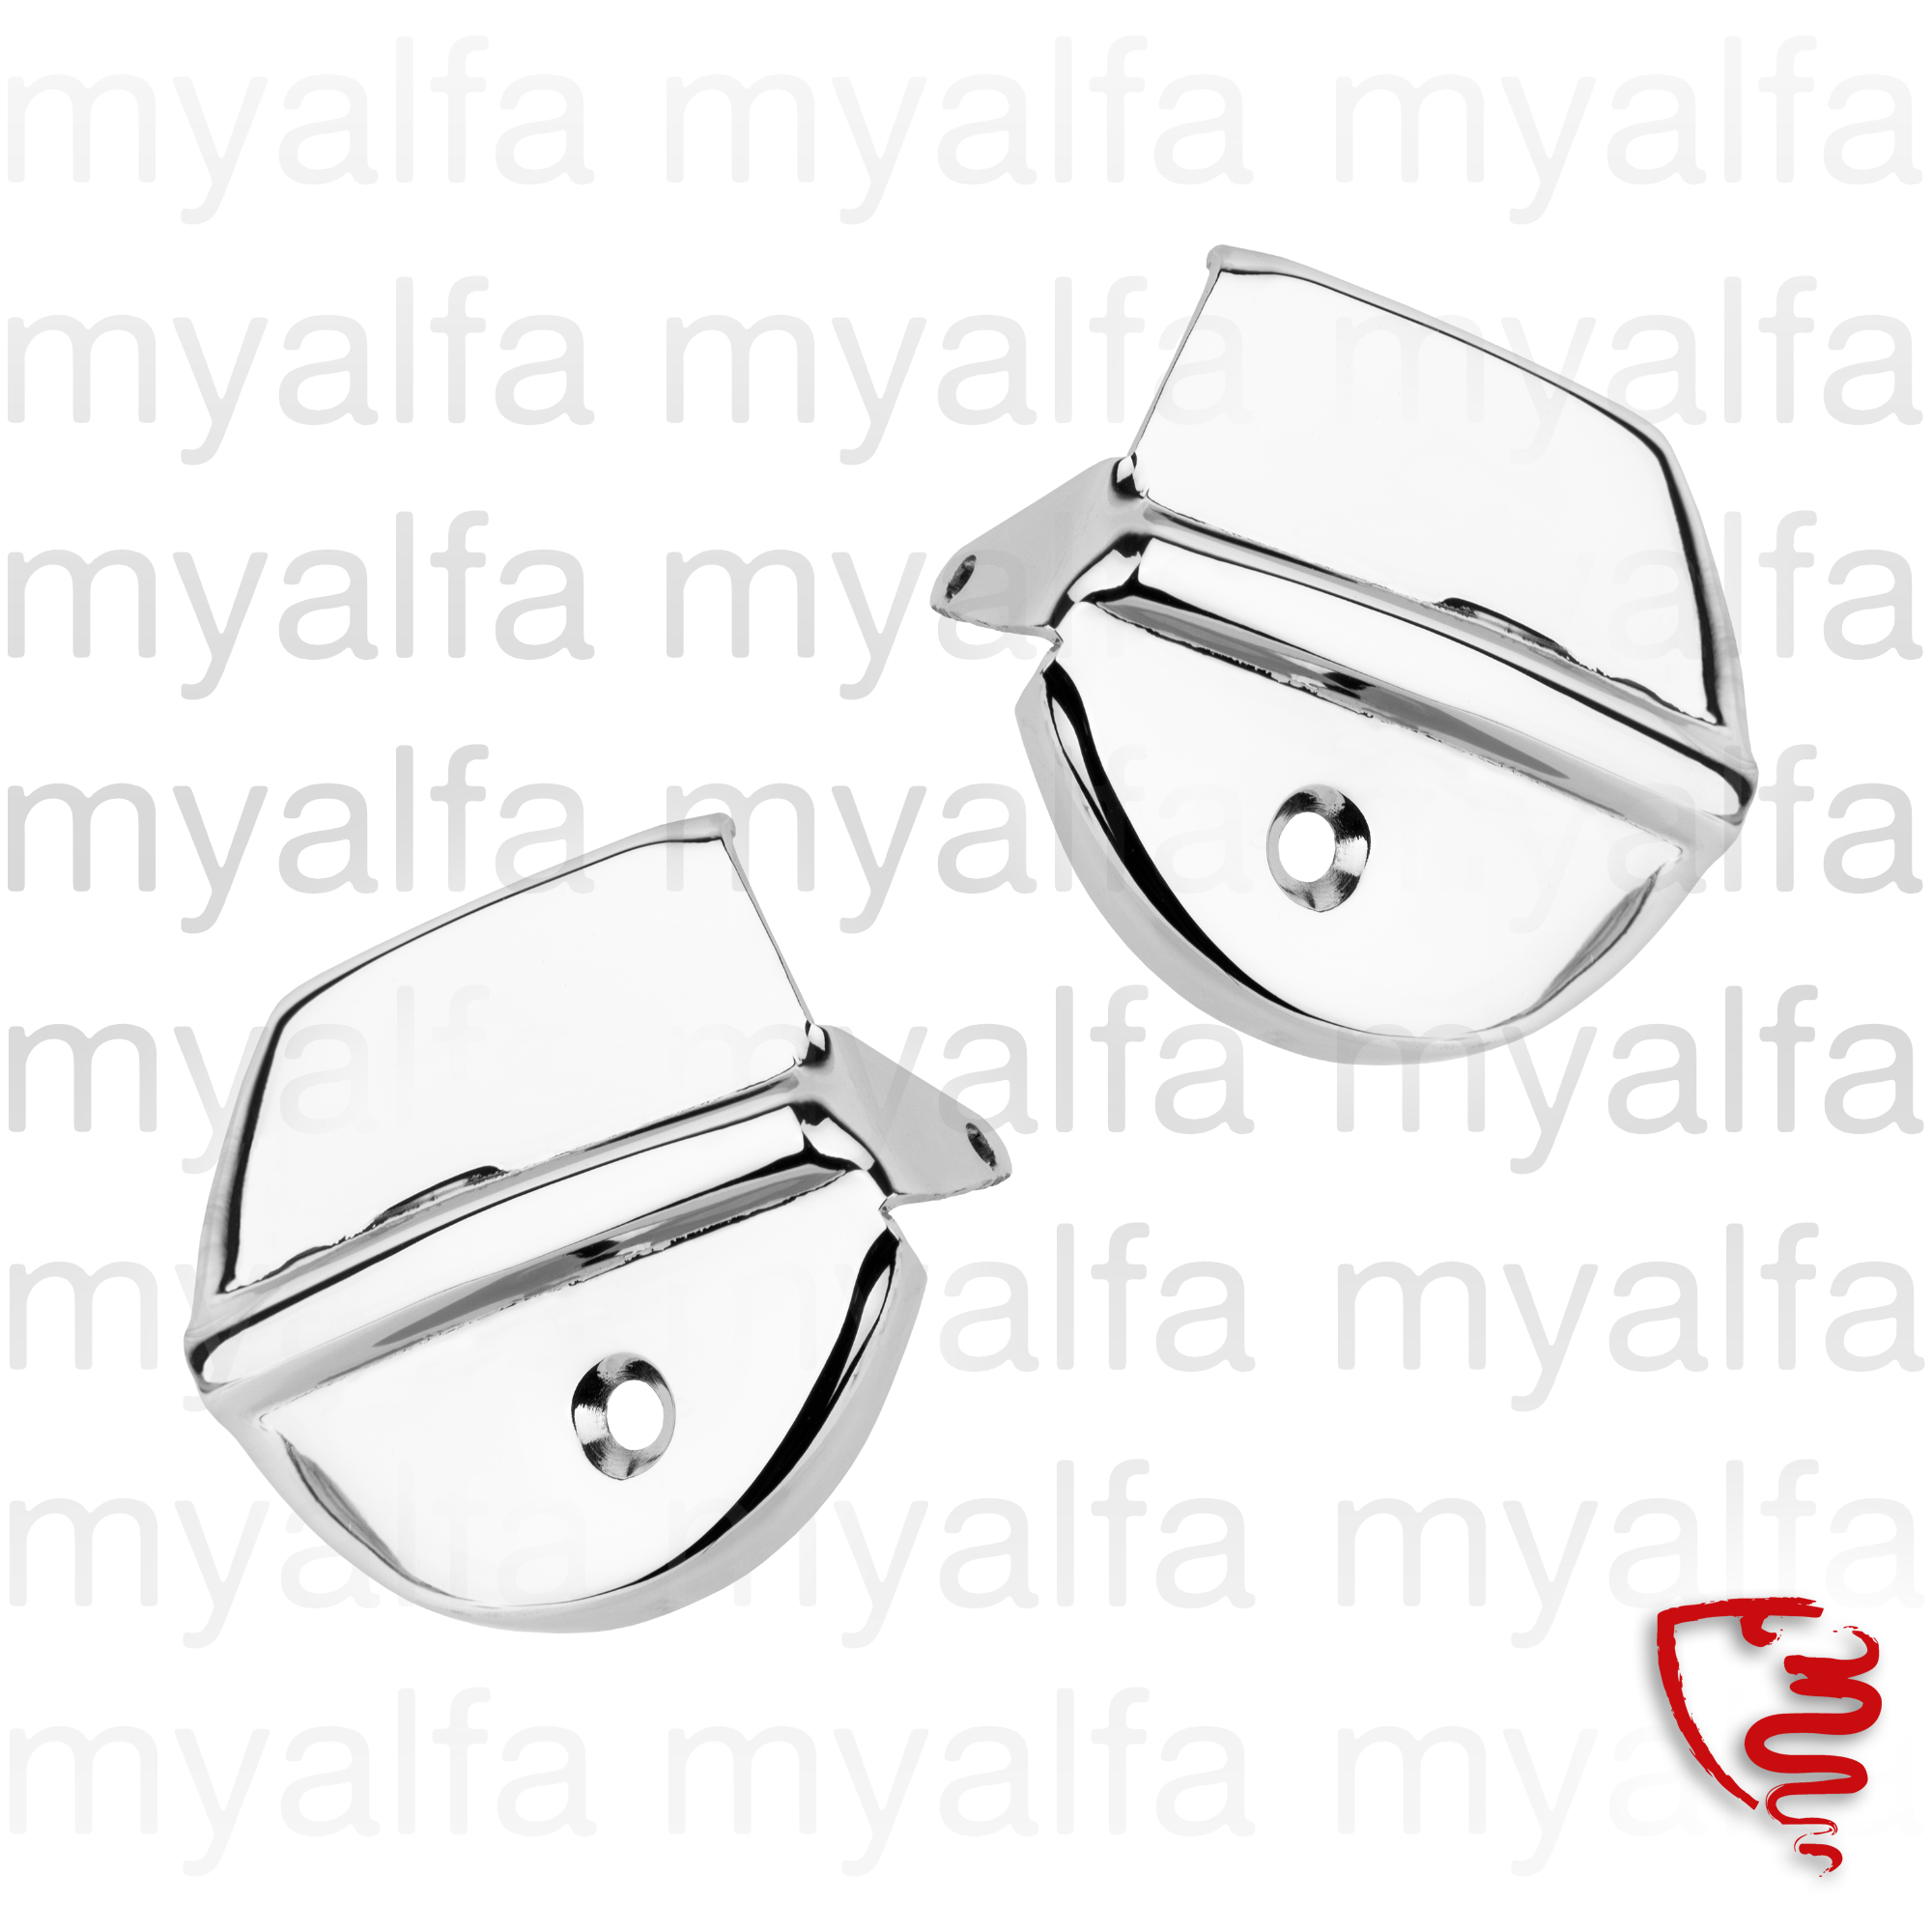 Conj. glass frame 750 covers Giulietta Spider for 750/101, Spider, Body parts, Chrome Parts, Door